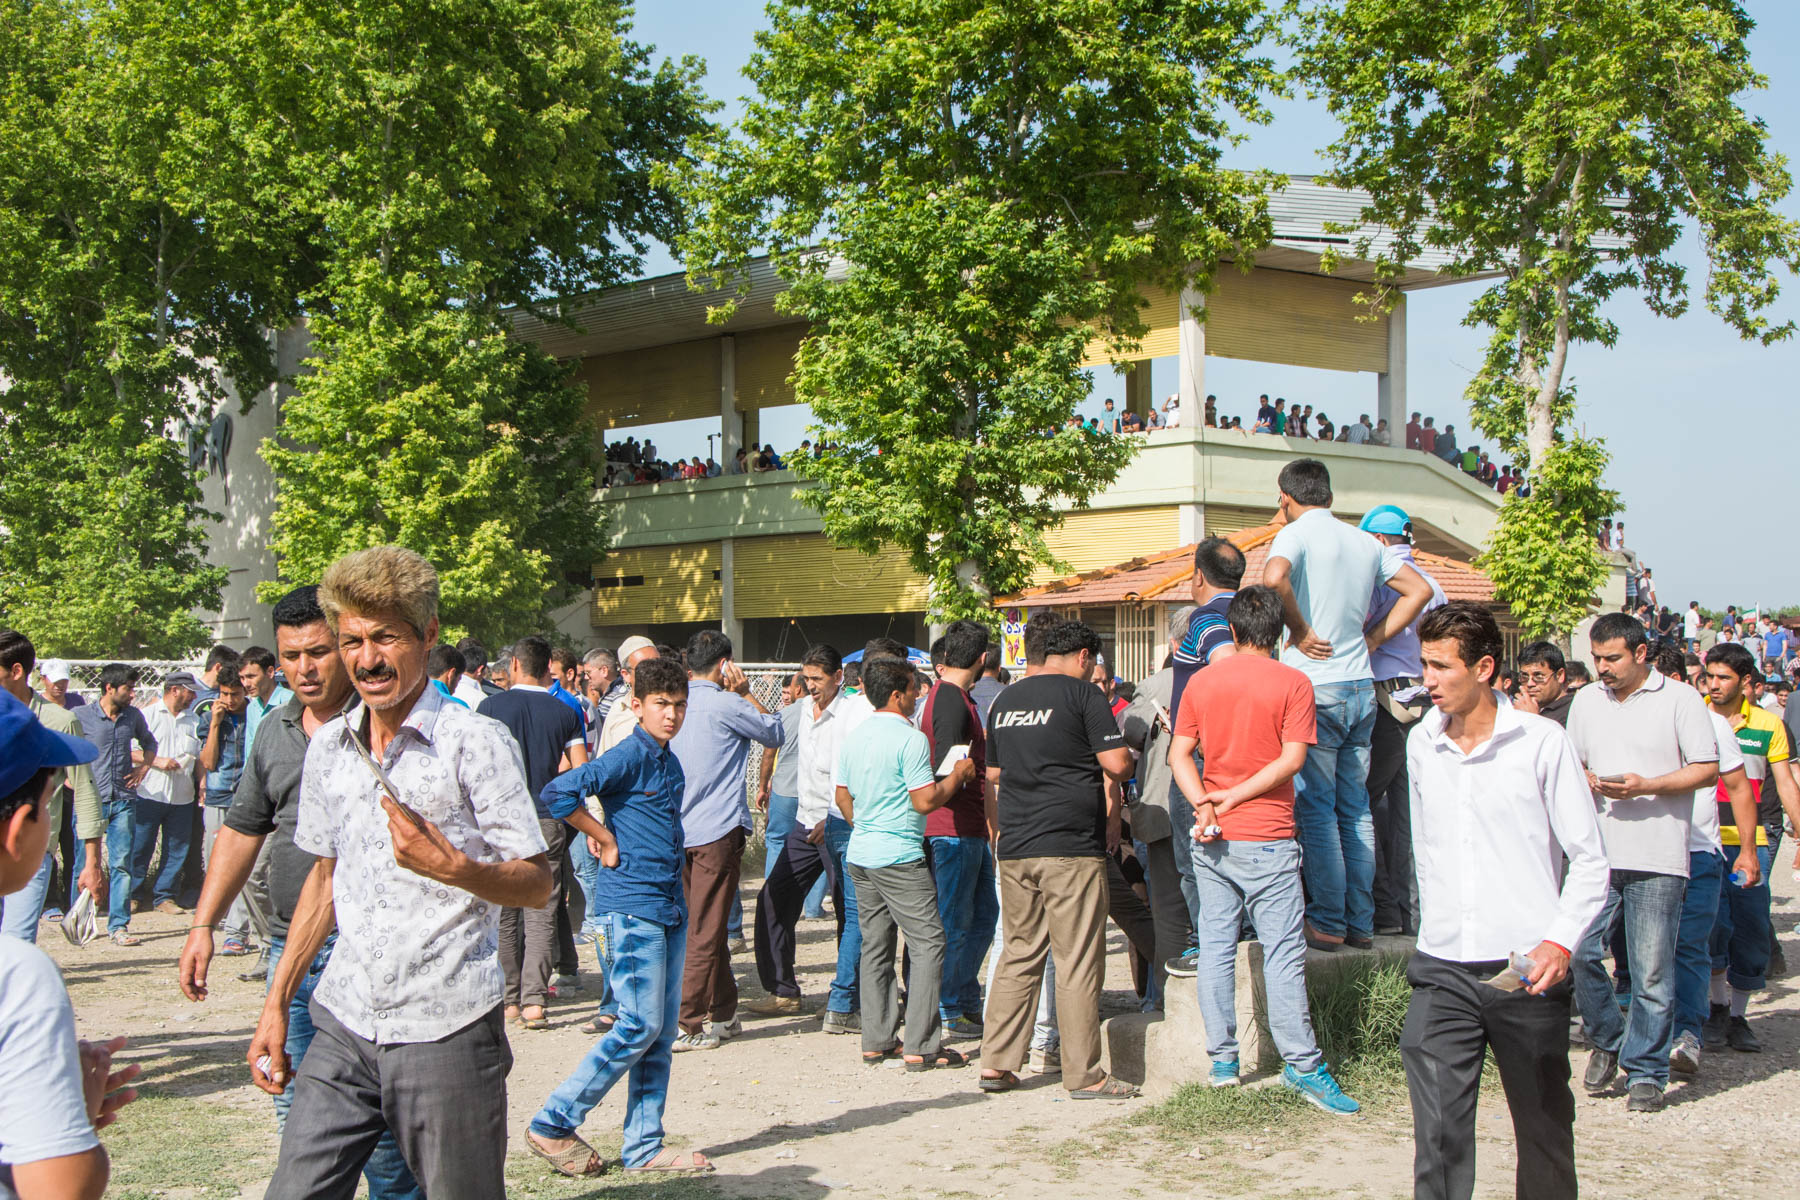 People of all ethnicities coming out to watch the horse races in Gonbad-e Kavus, Iran.